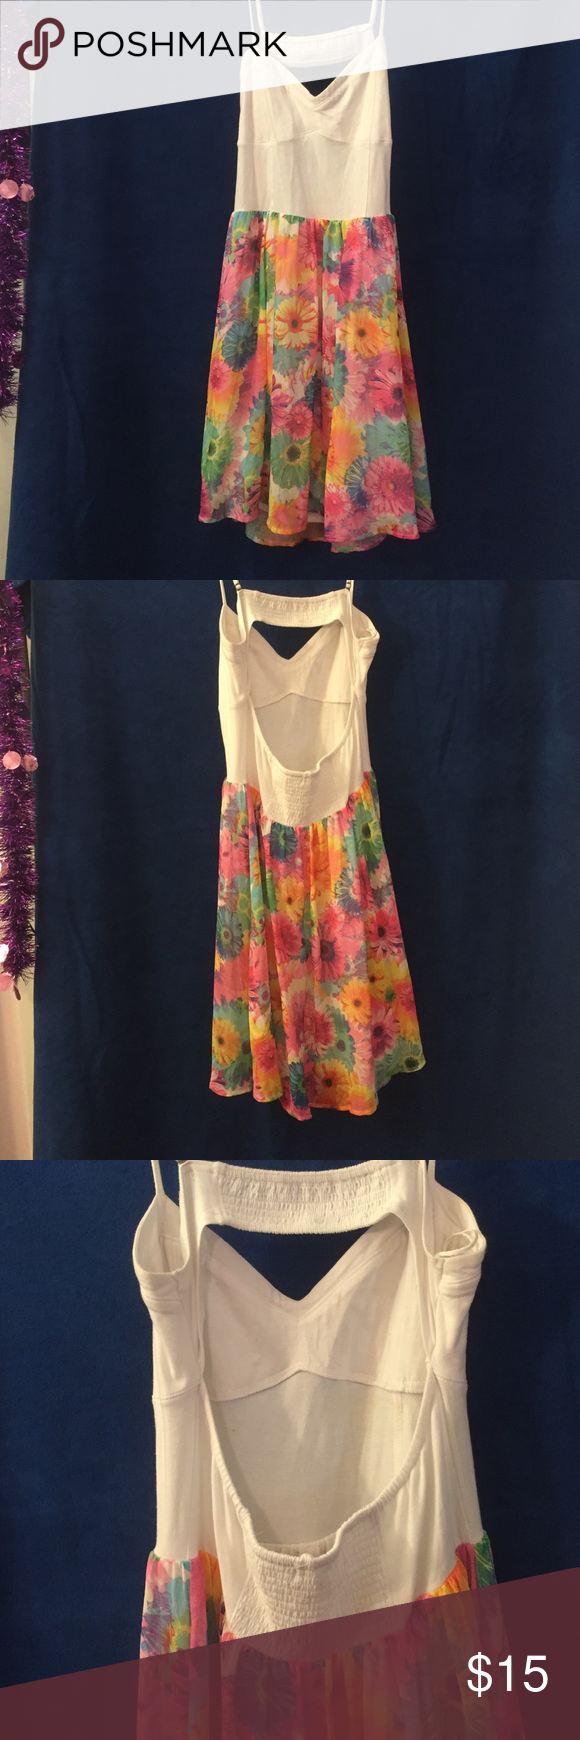 Floral spaghetti strap dress Floral, spaghetti strap, open back, summer dress, large Aeropostale Dresses Midi